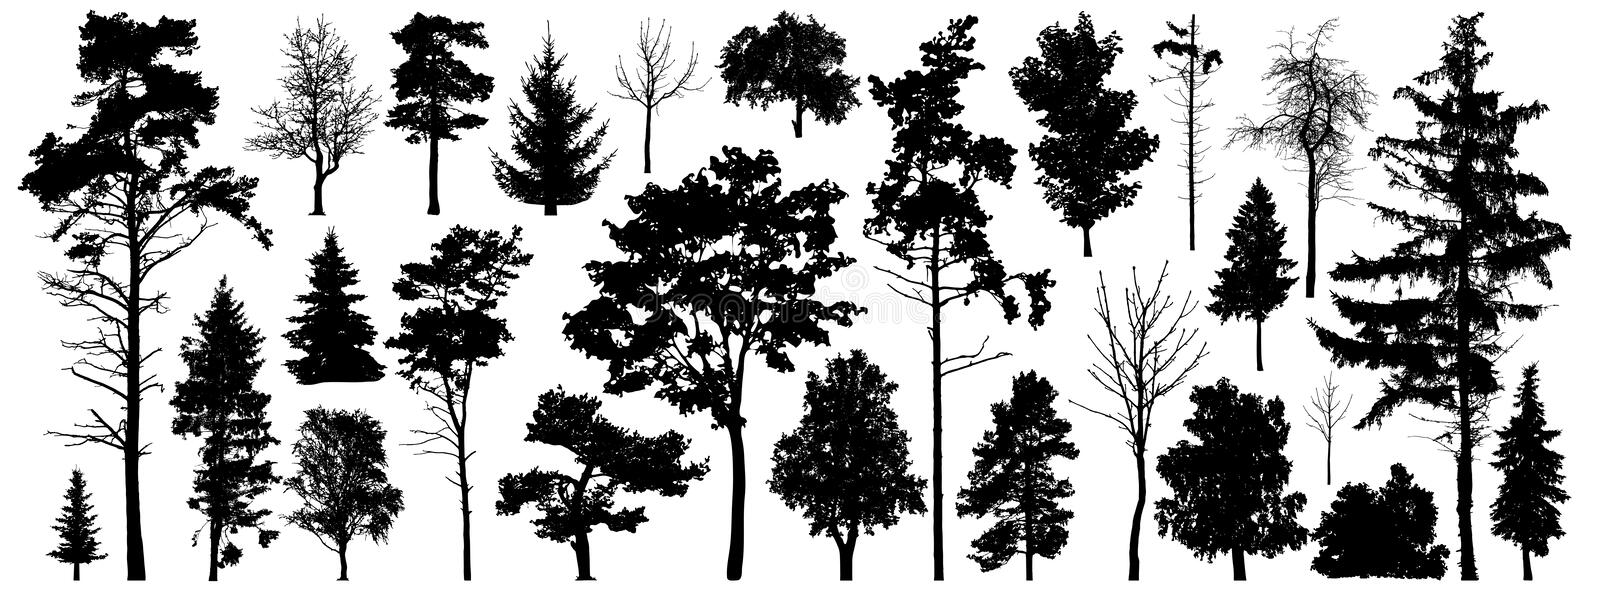 Tree silhouette vector. Isolated forest trees on white background stock illustration